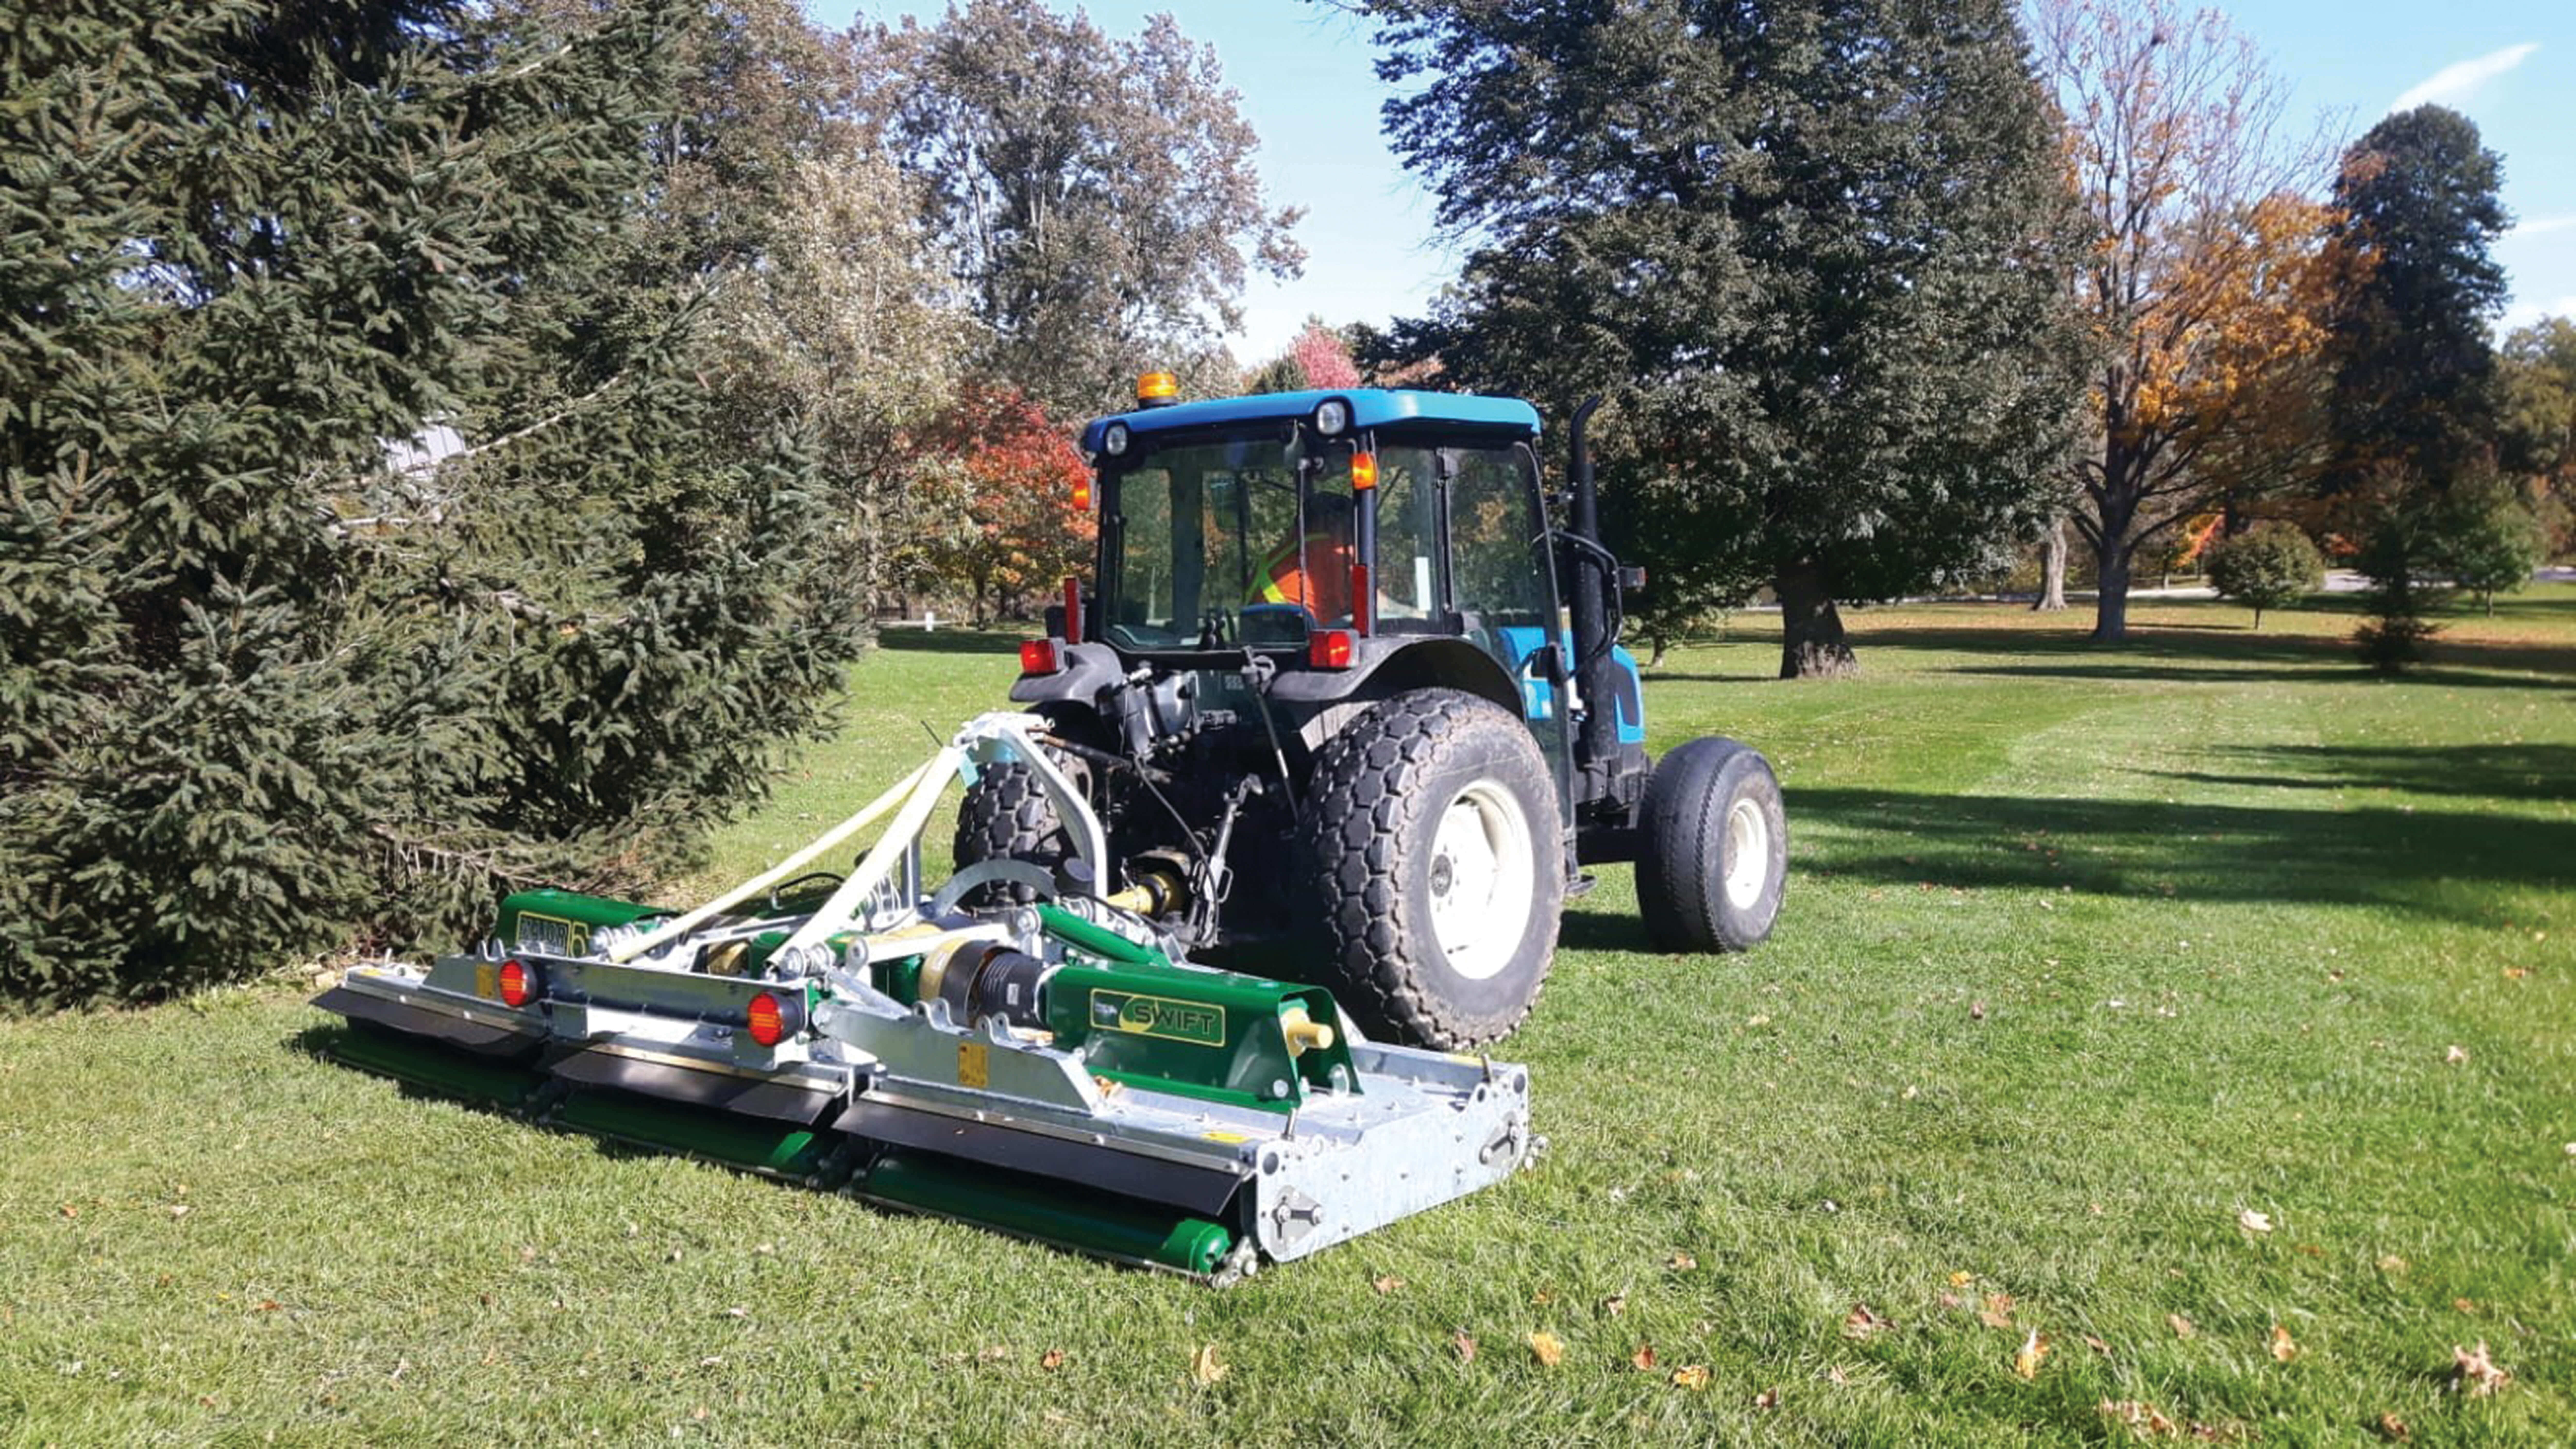 Major Swift Roller Mower (winged, three point linkage)